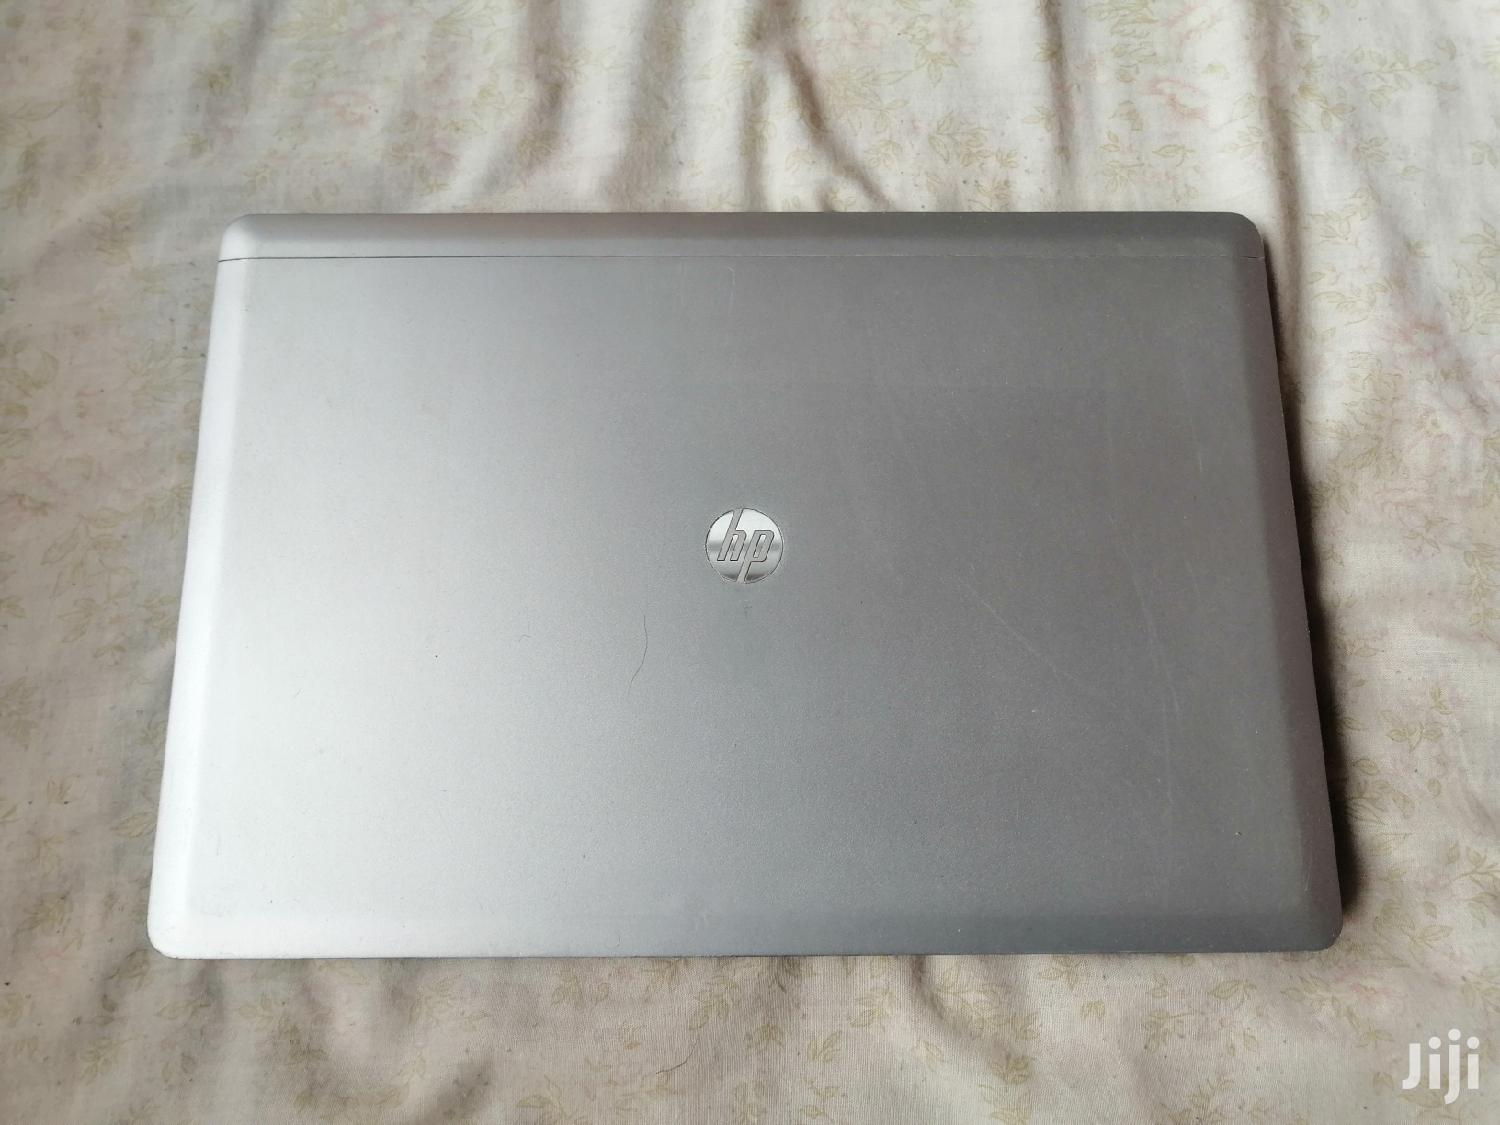 Archive: Laptop HP EliteBook Folio 9470M 8GB Intel Core I5 HDD 500GB